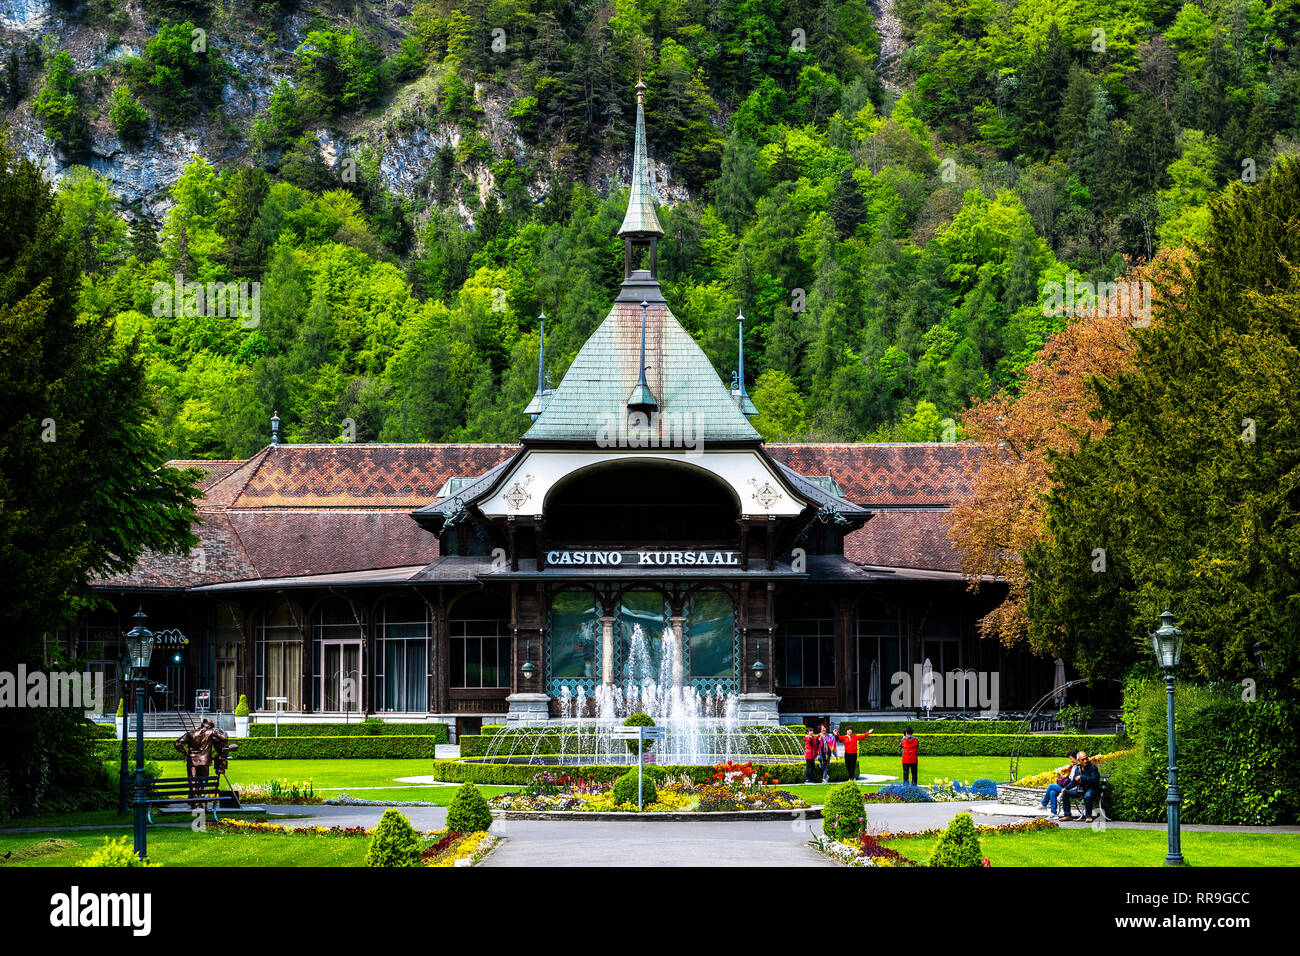 Casino Kursaal in the center of Interlaken, a very famous spot of the town. - Stock Image